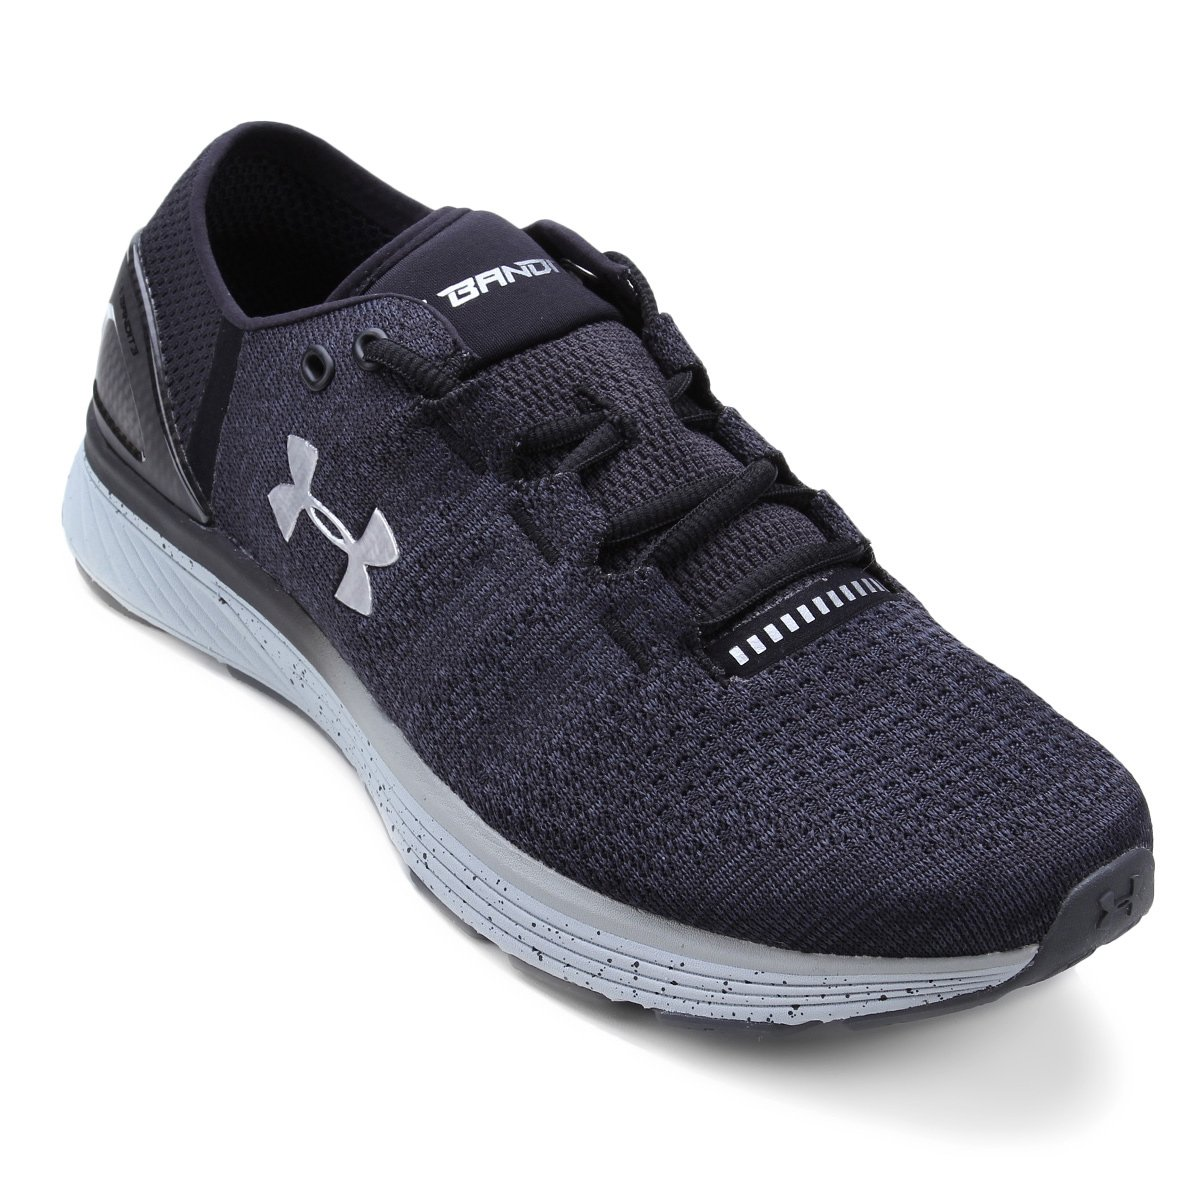 Tênis Under Armour Charged Bandit 3 Masculino - Compre Agora  5219b7335fa29